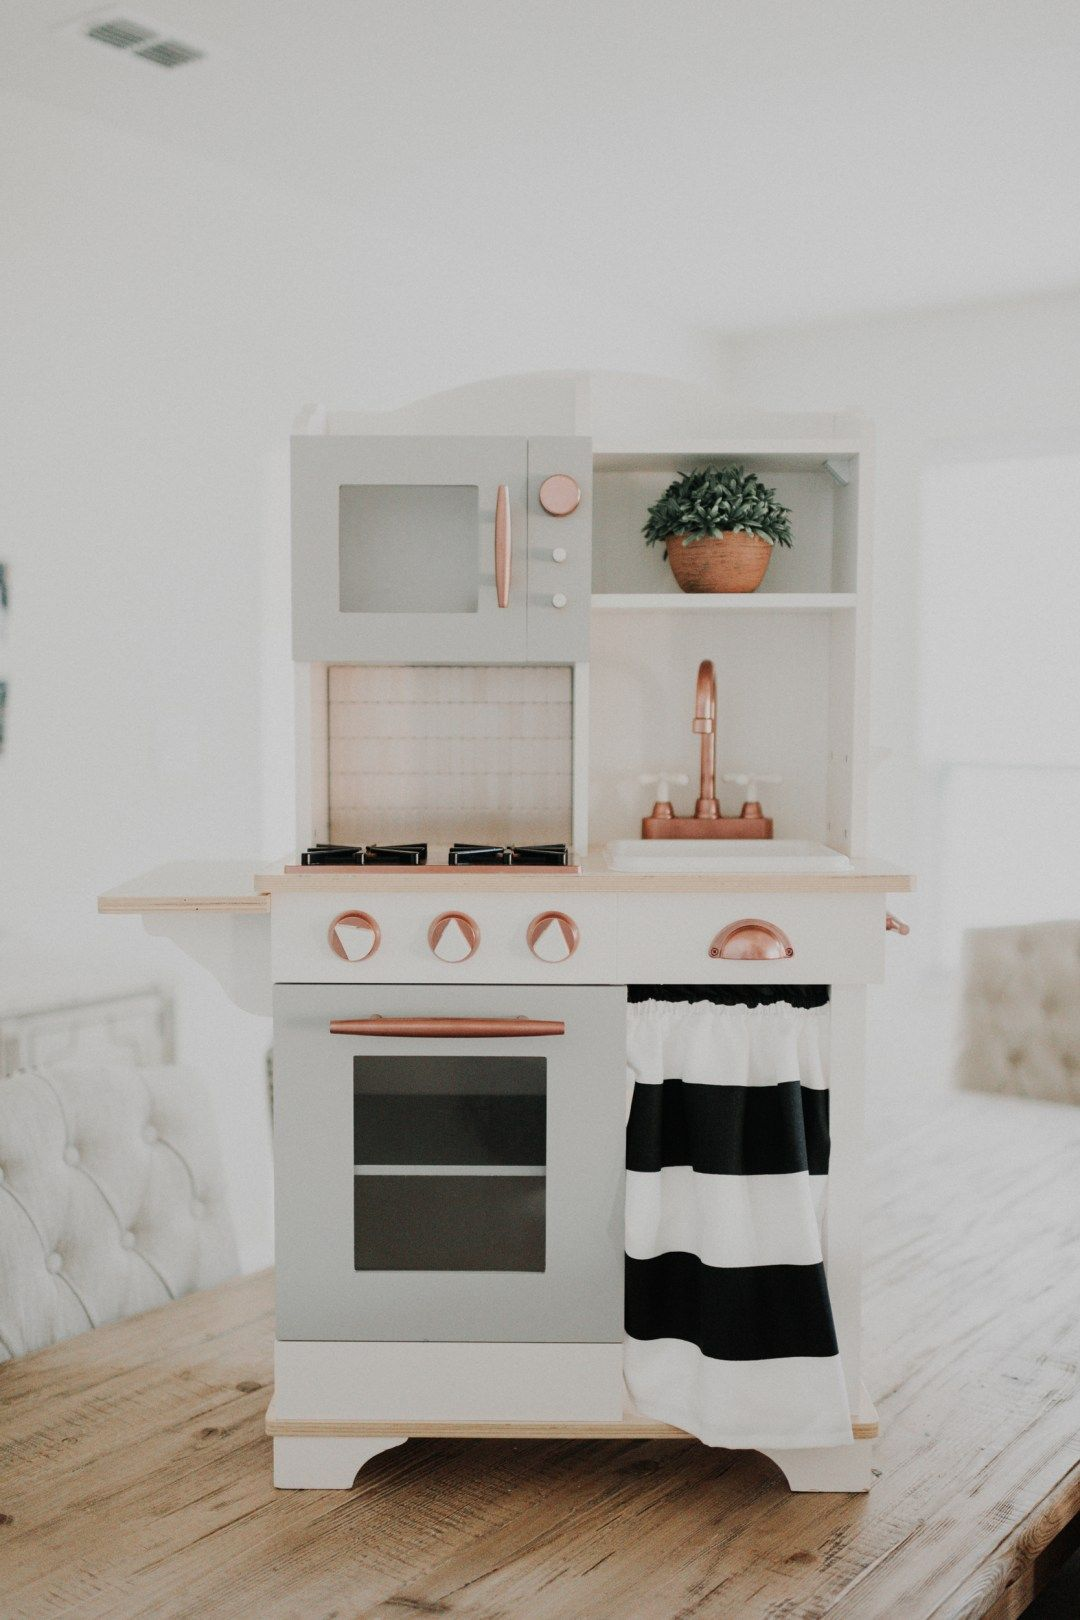 Ikea Küche Duktig Ebay Kleinanzeigen Diy Farmhouse Play Kitchen Do It Yourself Pretend Kitchen Play